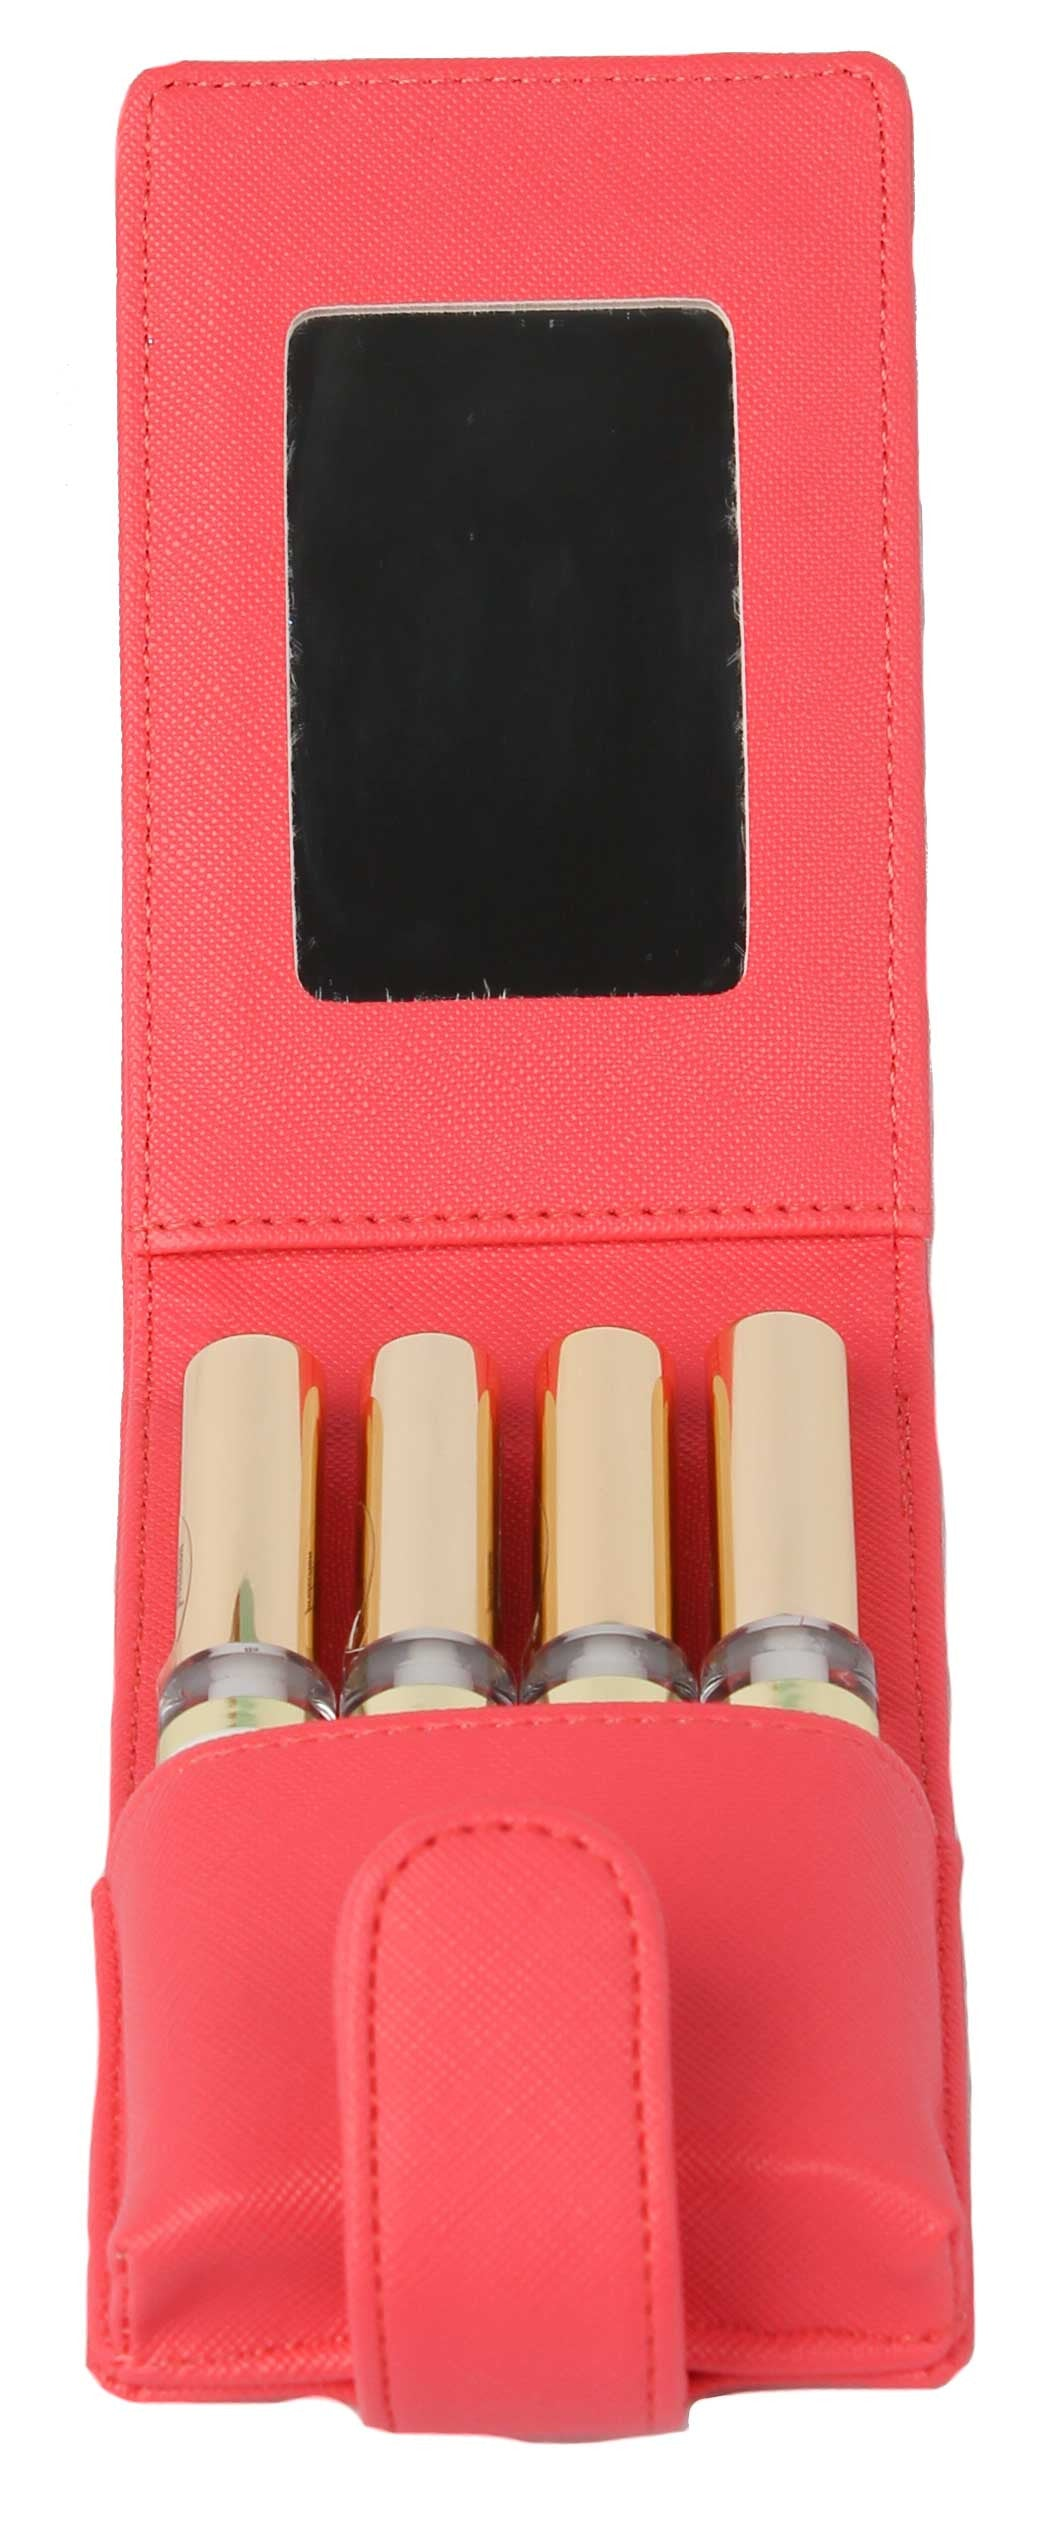 Lipstick Lip Pouch and Carrying Case Coral